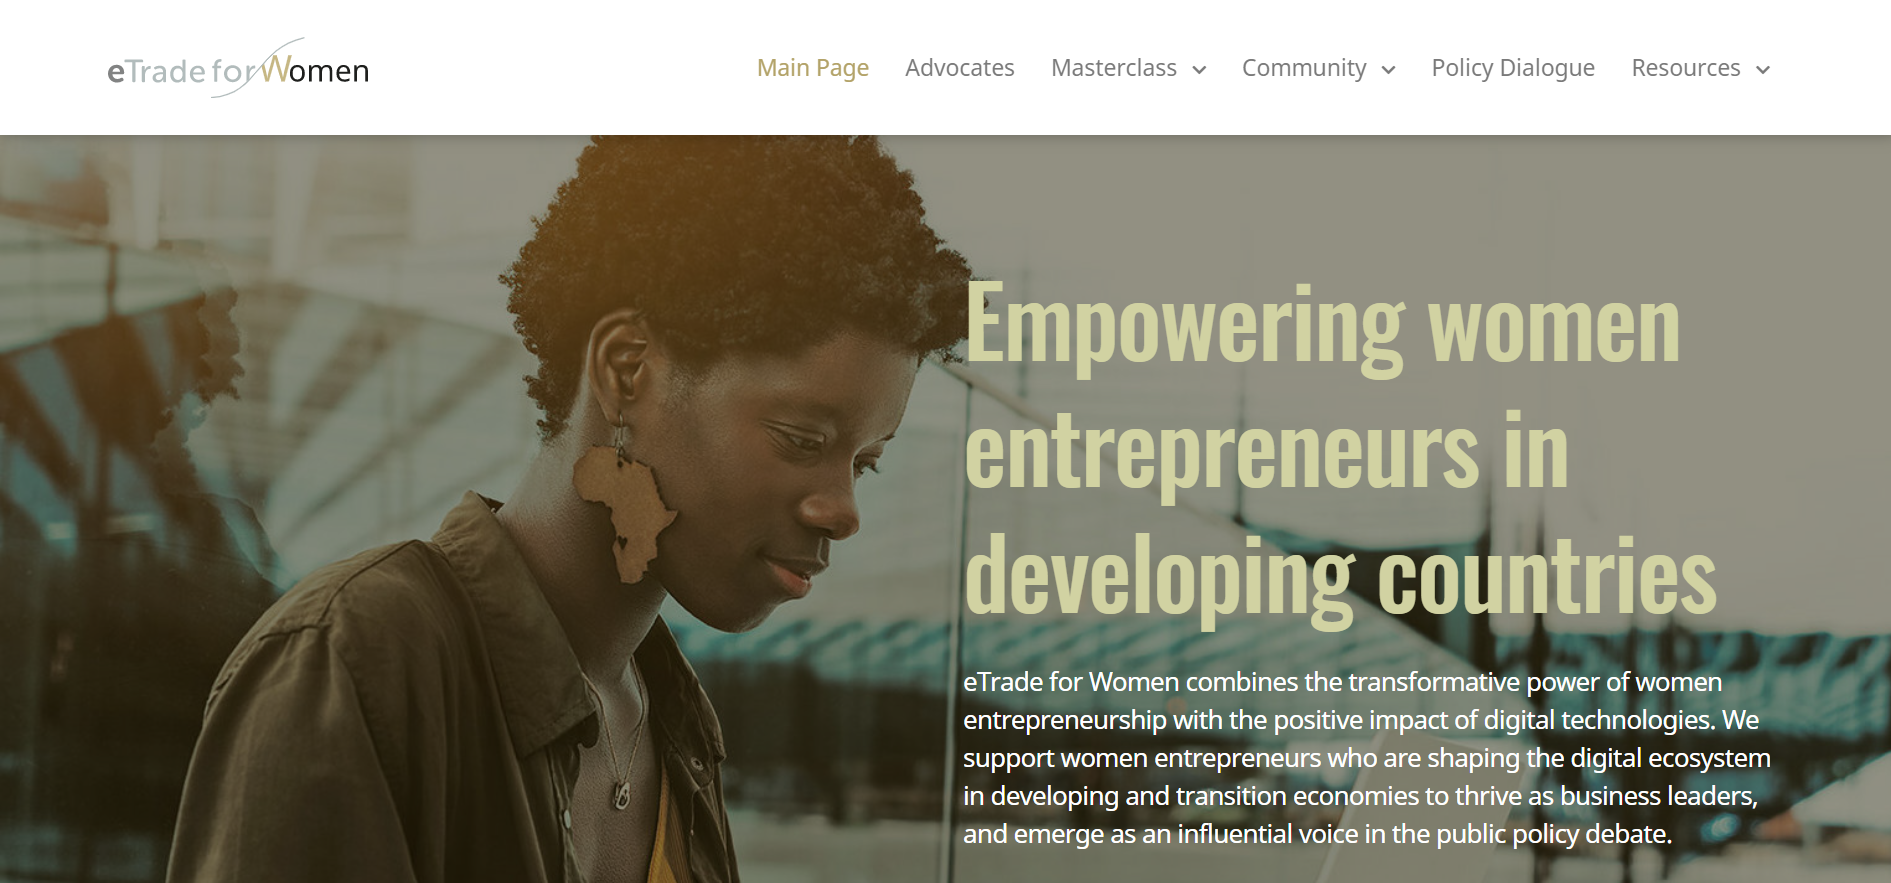 United Nations eTrade for Women Masterclass in East Africa